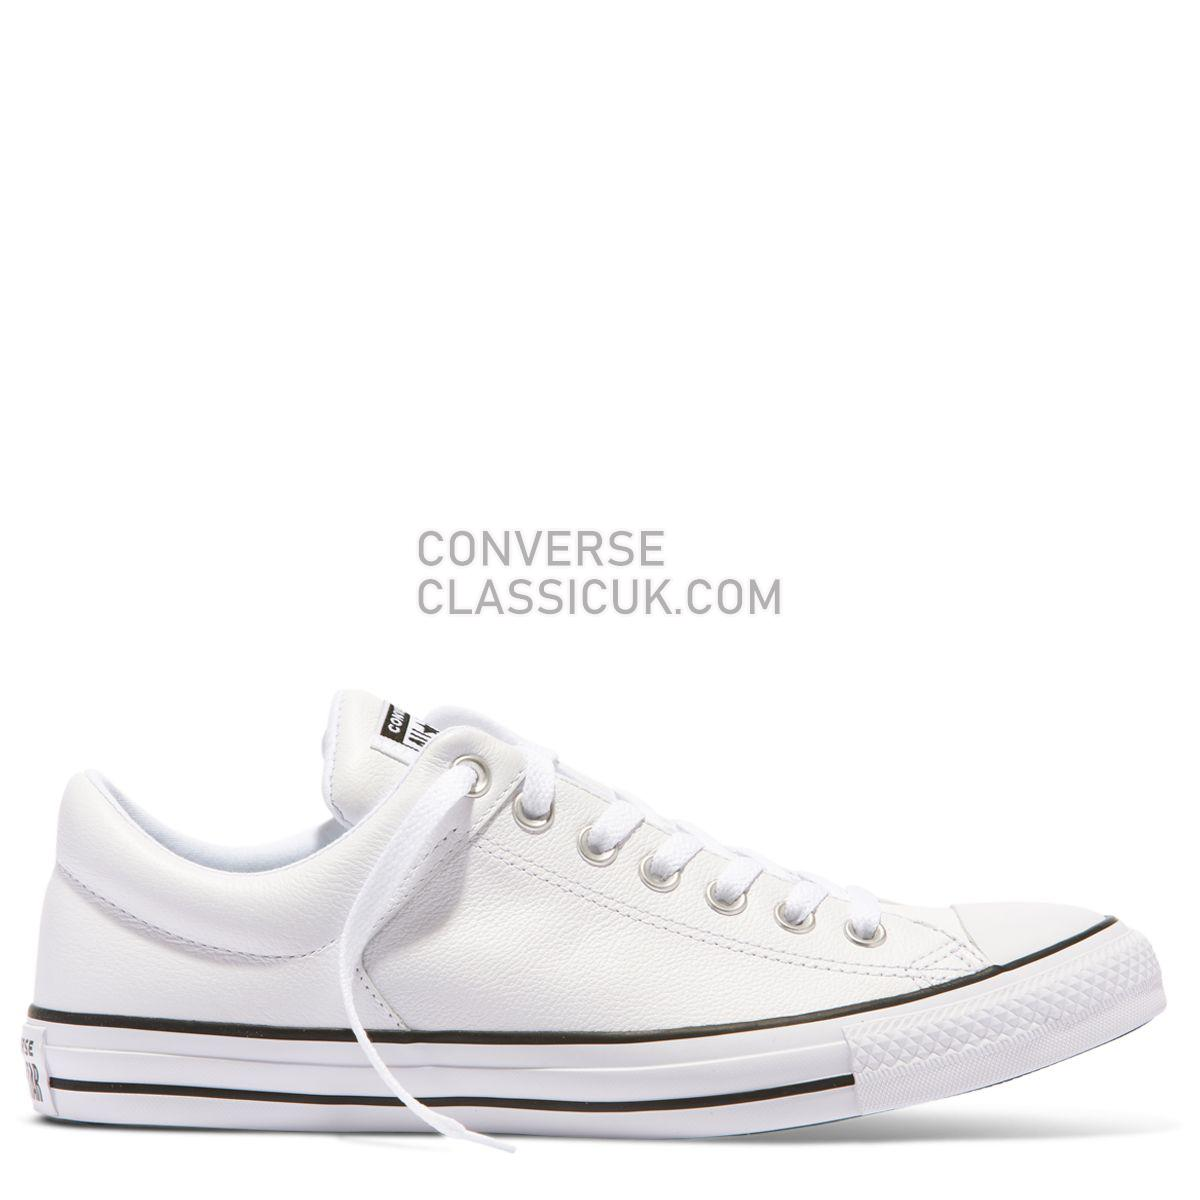 Converse Chuck Taylor All Star High Street Low Top White Mens Womens Unisex 149429 White/Black/White Shoes